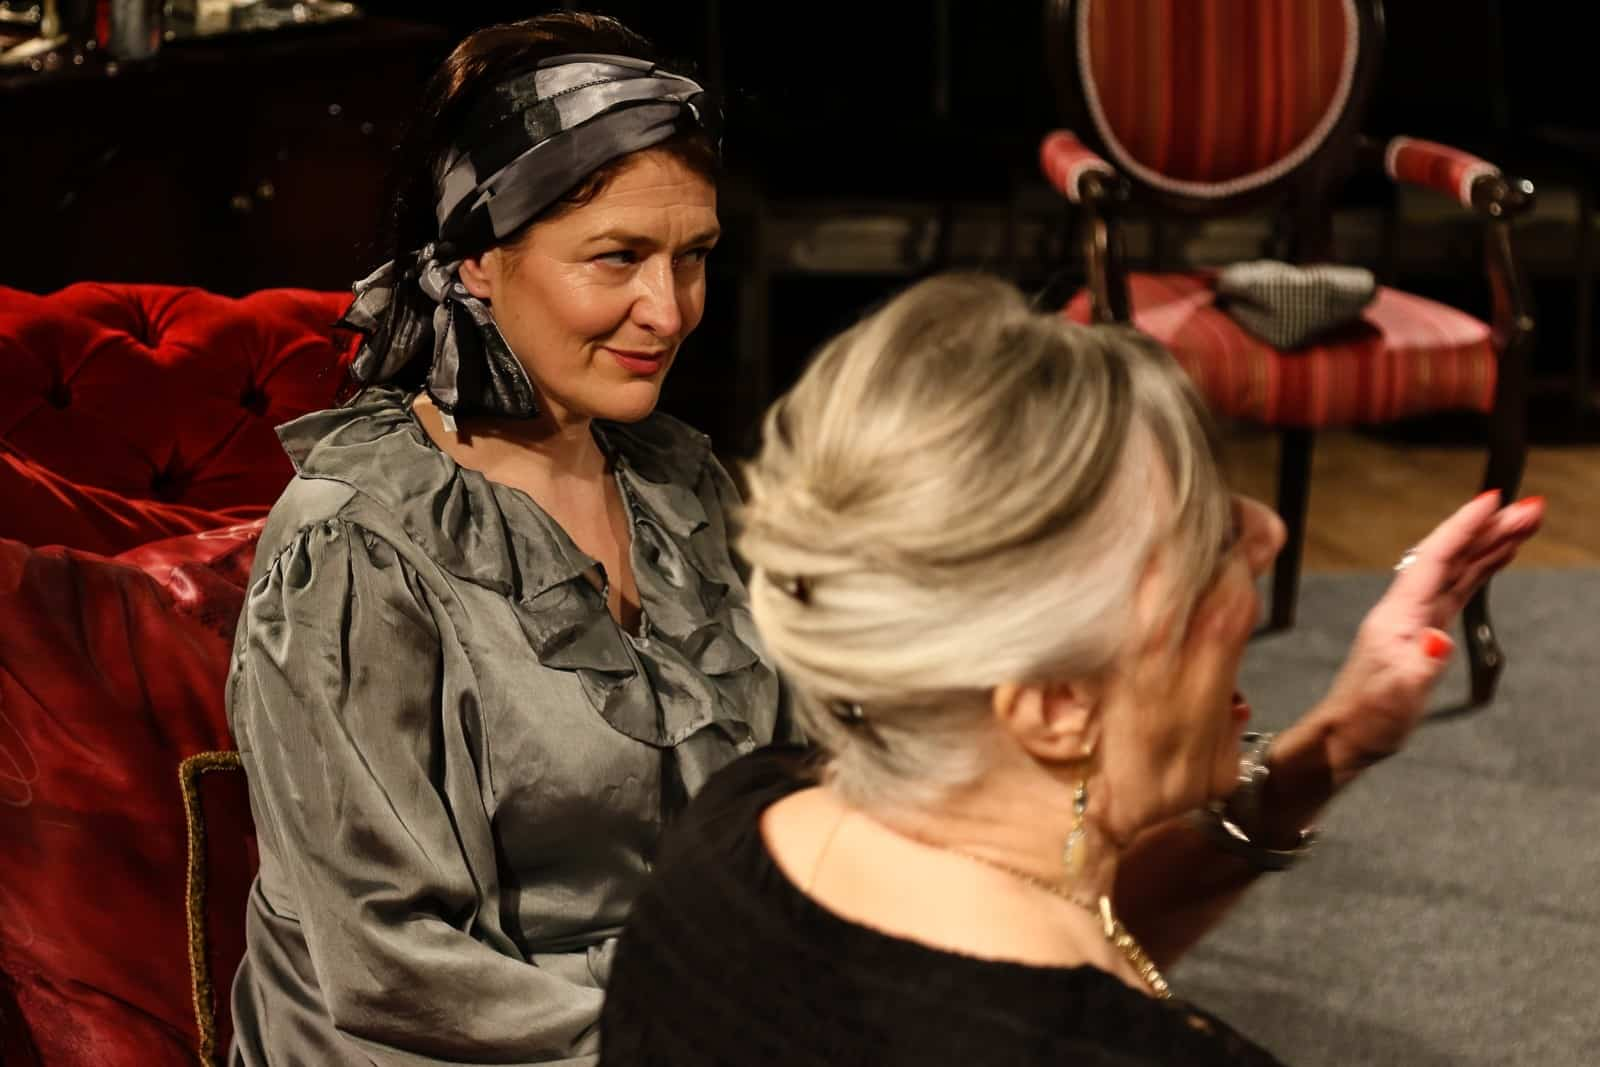 Photo of Marie Cooper Actor as Anna Mary becoming increasing irritated at Verner interrupting - Photo onstage during Come into the Garden Maud onstage during Come into the Garden Maud